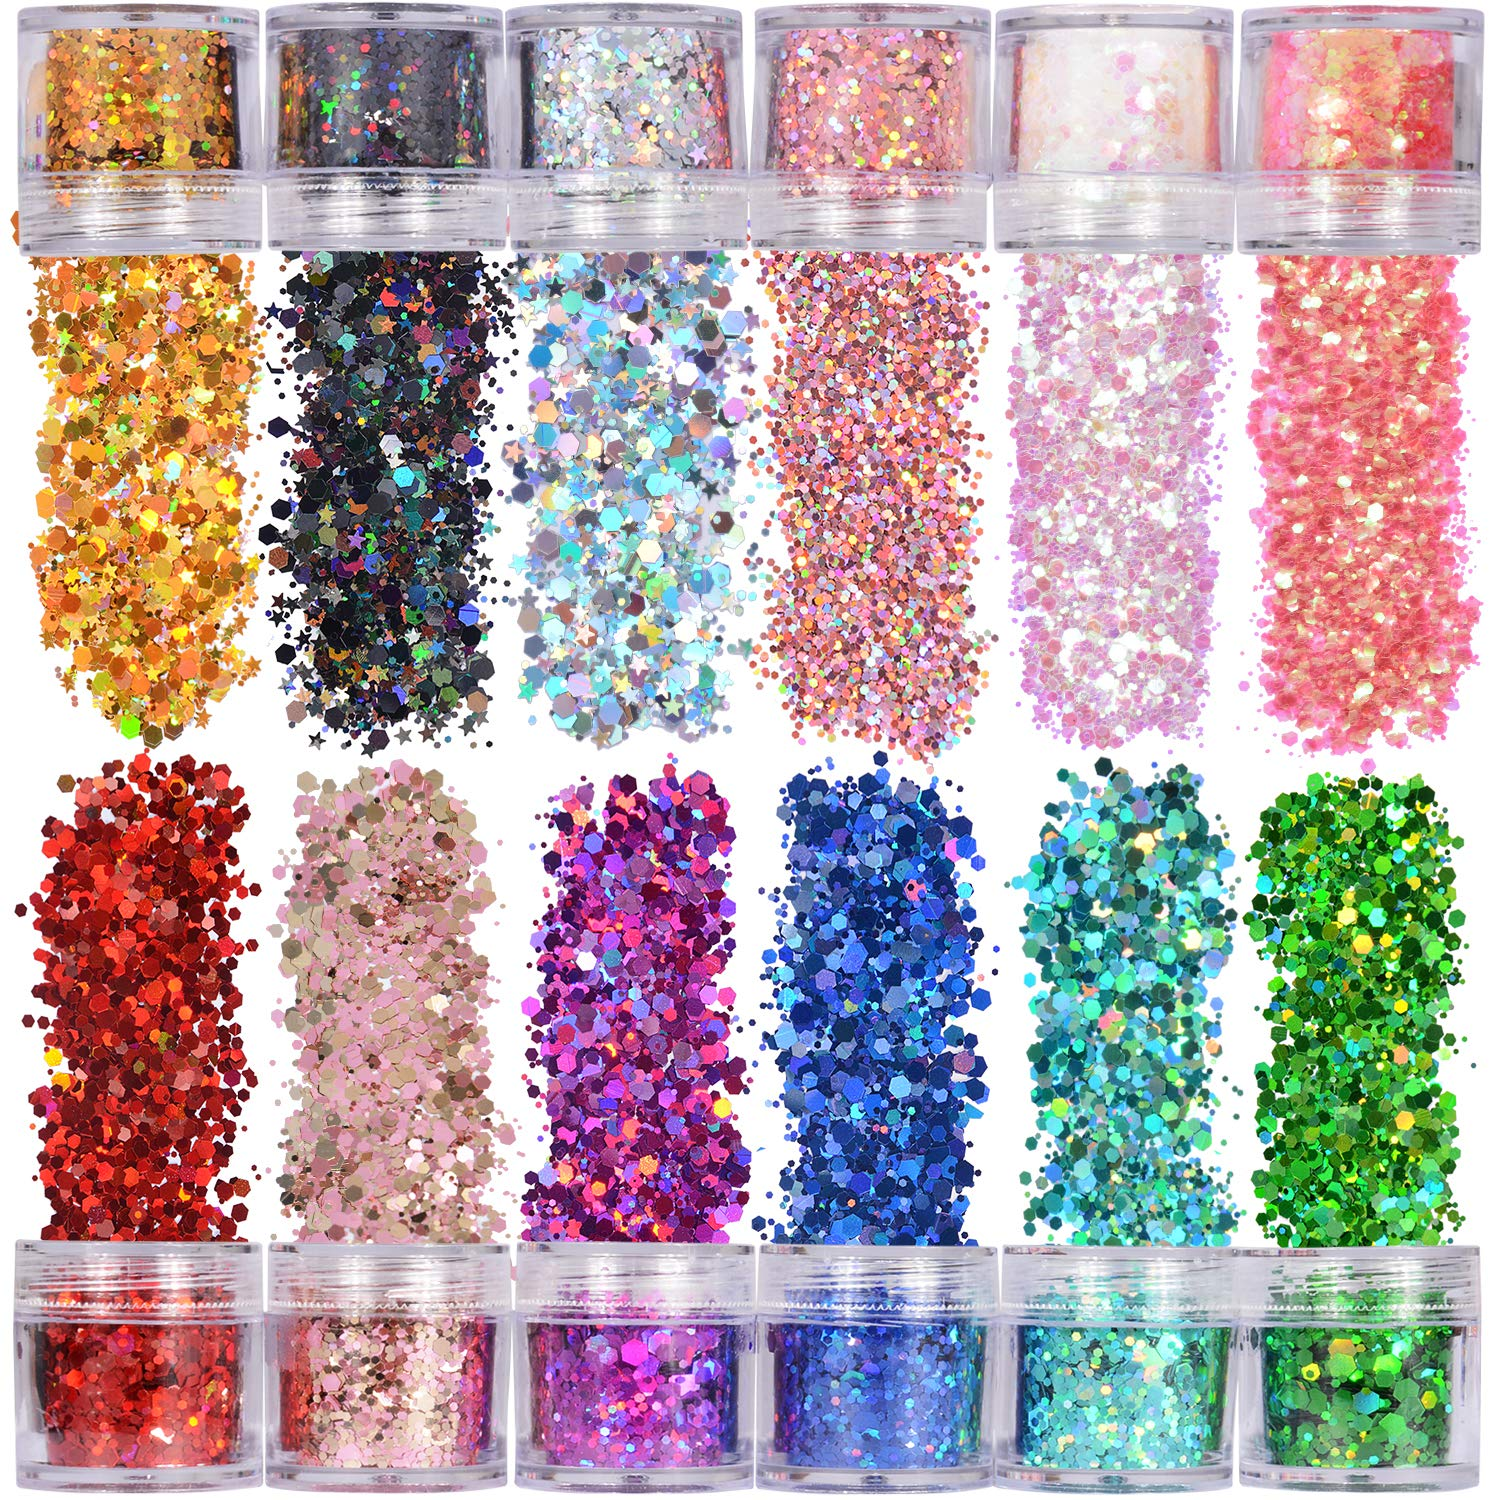 Warmfits Holographic Chunky Glitter 12 Colors Total 120g Face Body Eye Hair Nail Festival Chunky Holographic Glitter Different Size, Stars and Hexagons Shaped (Set A) by Warmfits